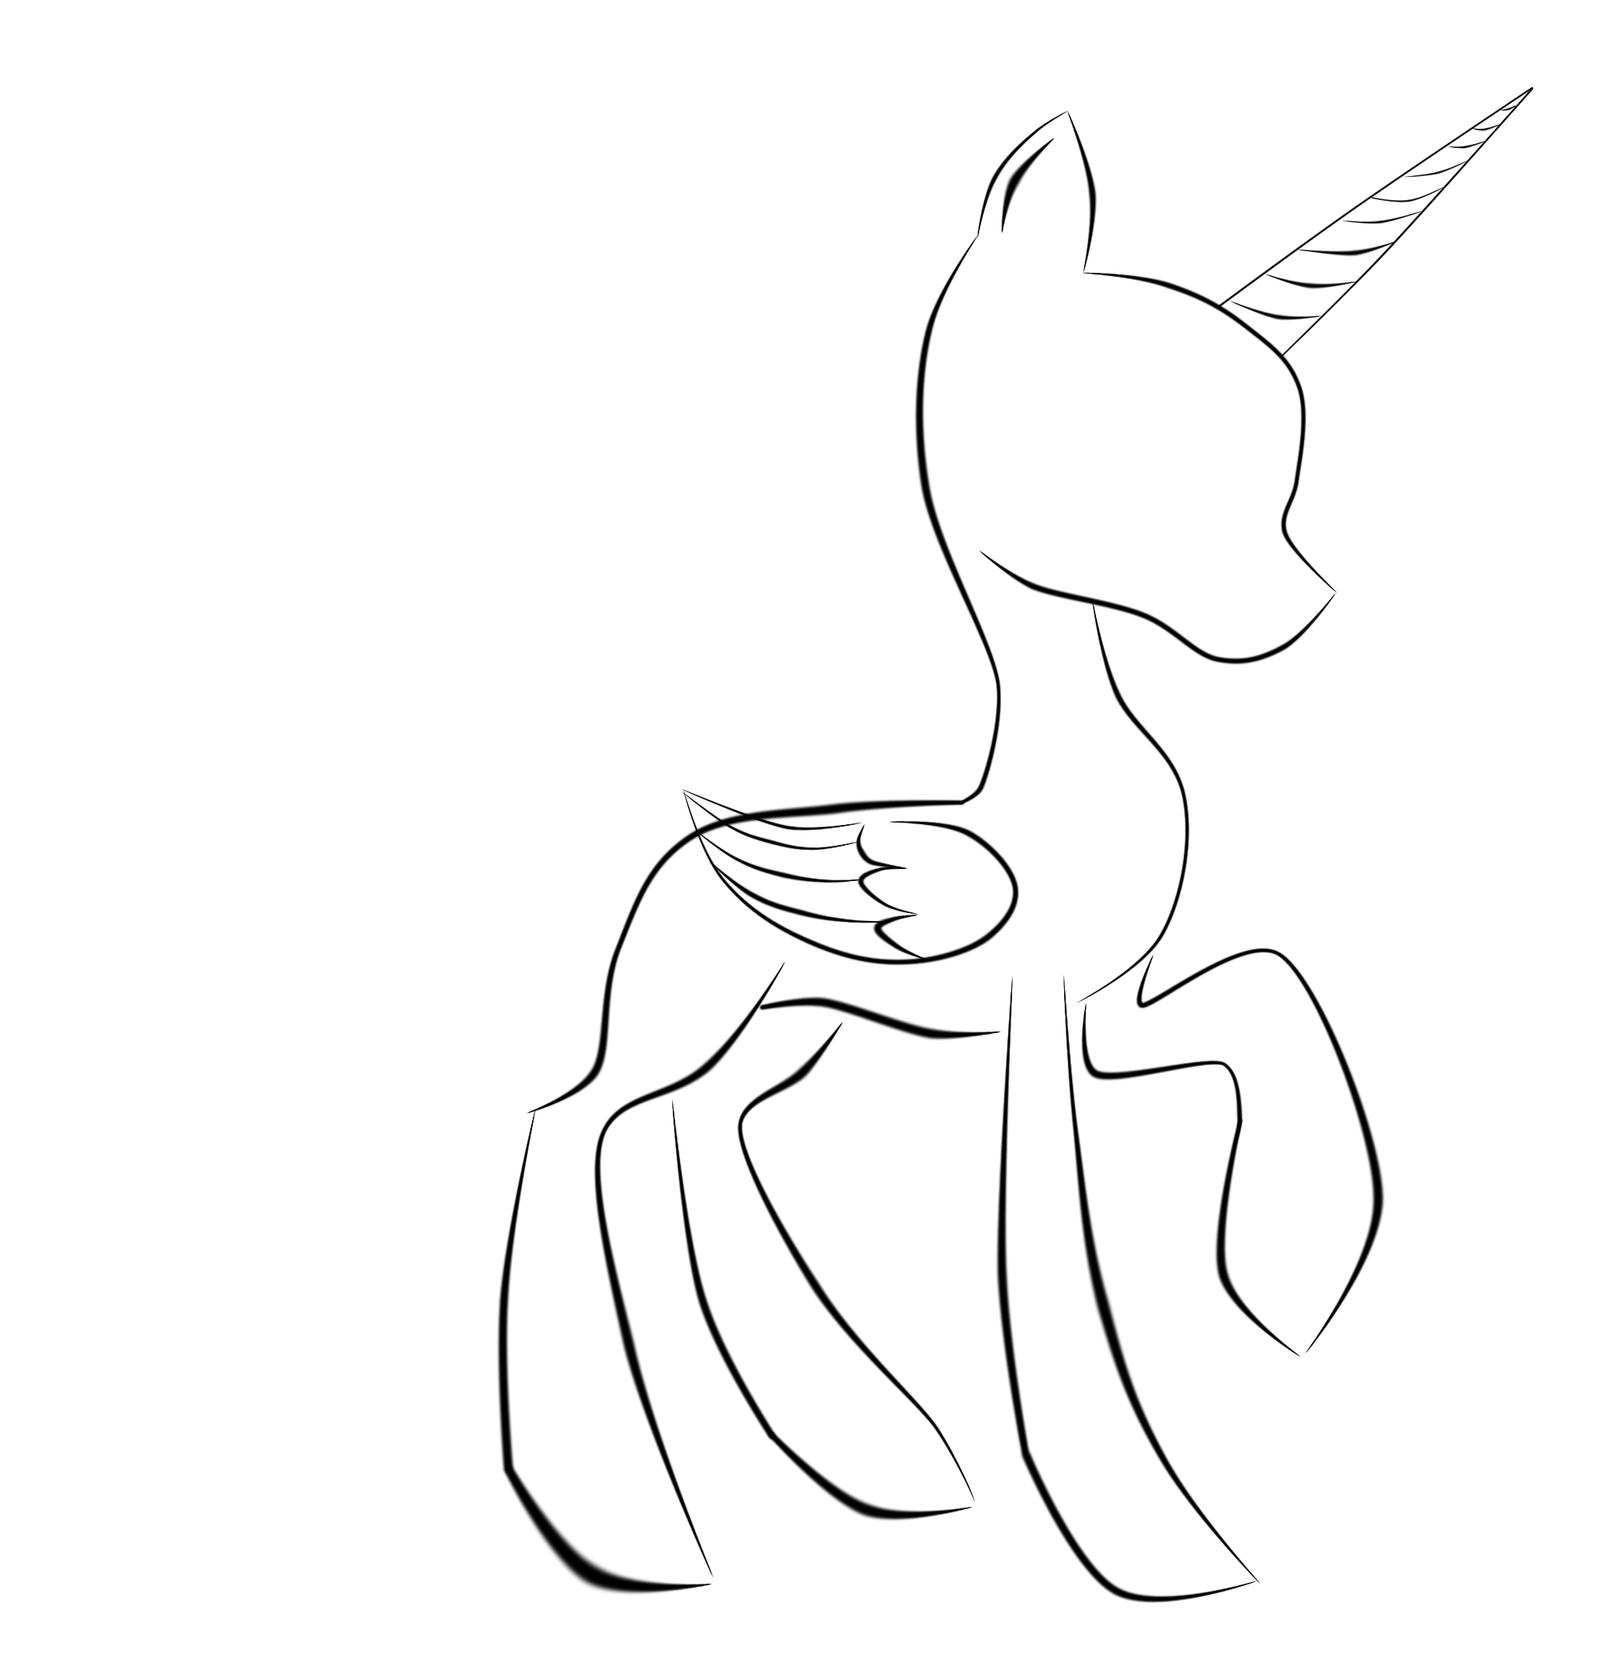 alicorn mlp coloring page alicorn filly coloring pages printable coloring pages page coloring alicorn mlp